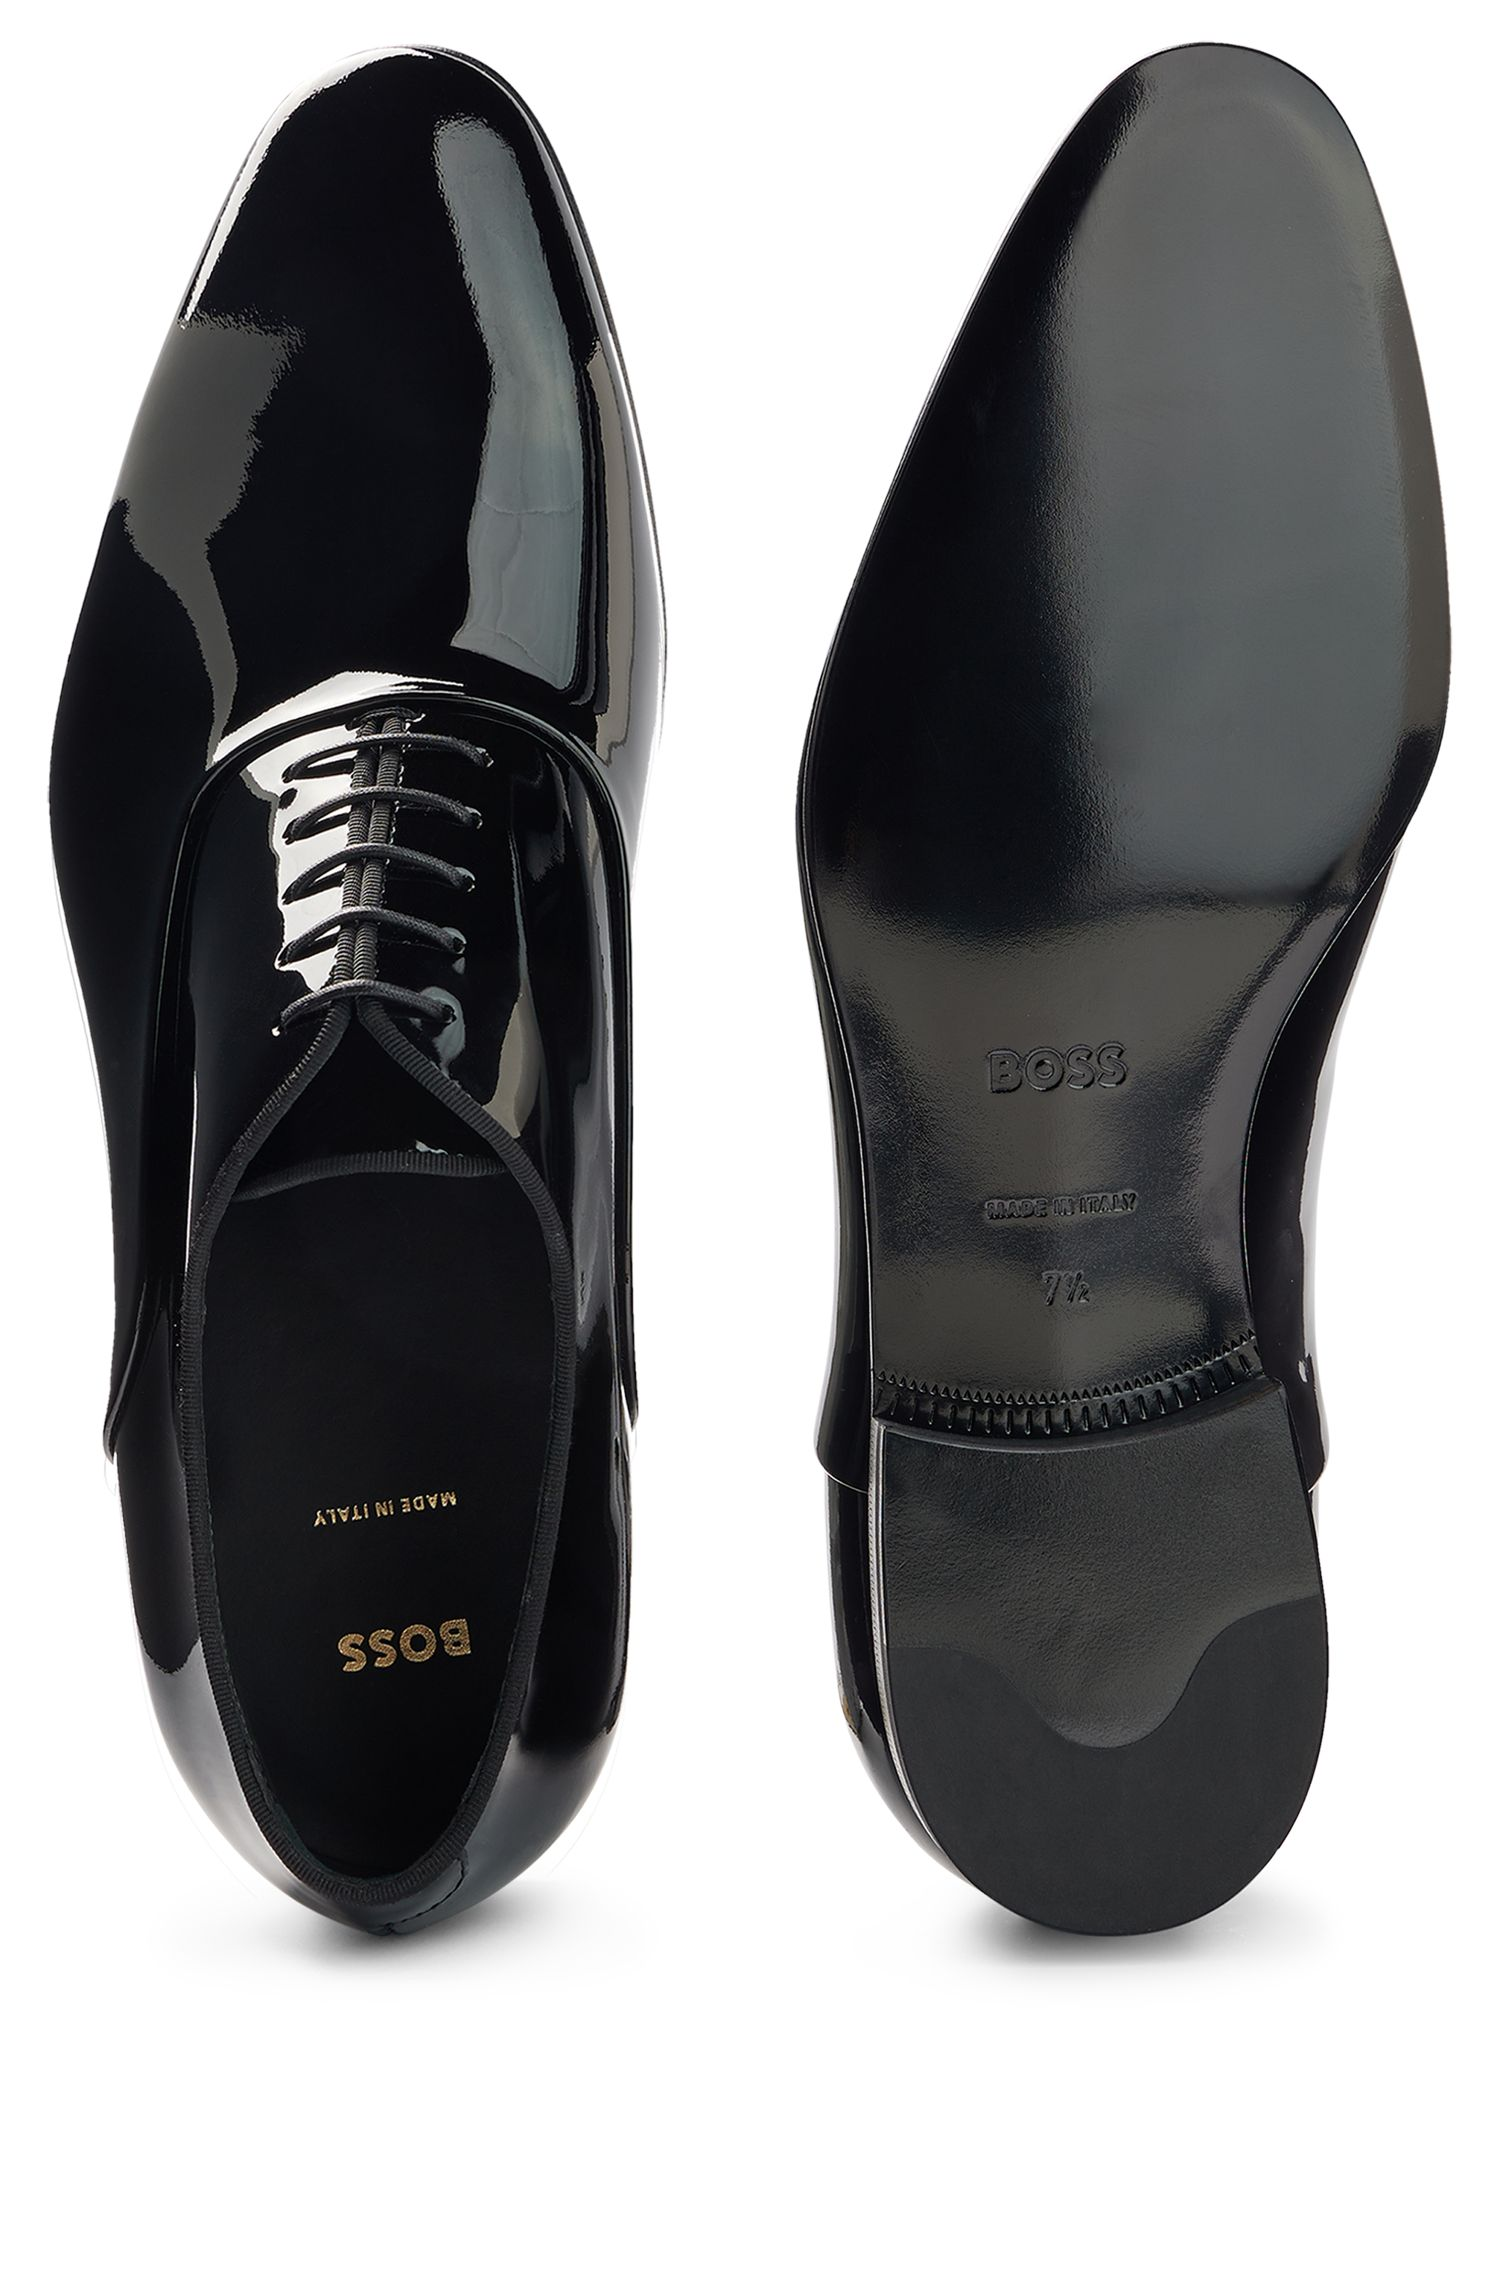 Patent leather Oxford shoes with grosgrain collar piping, Black